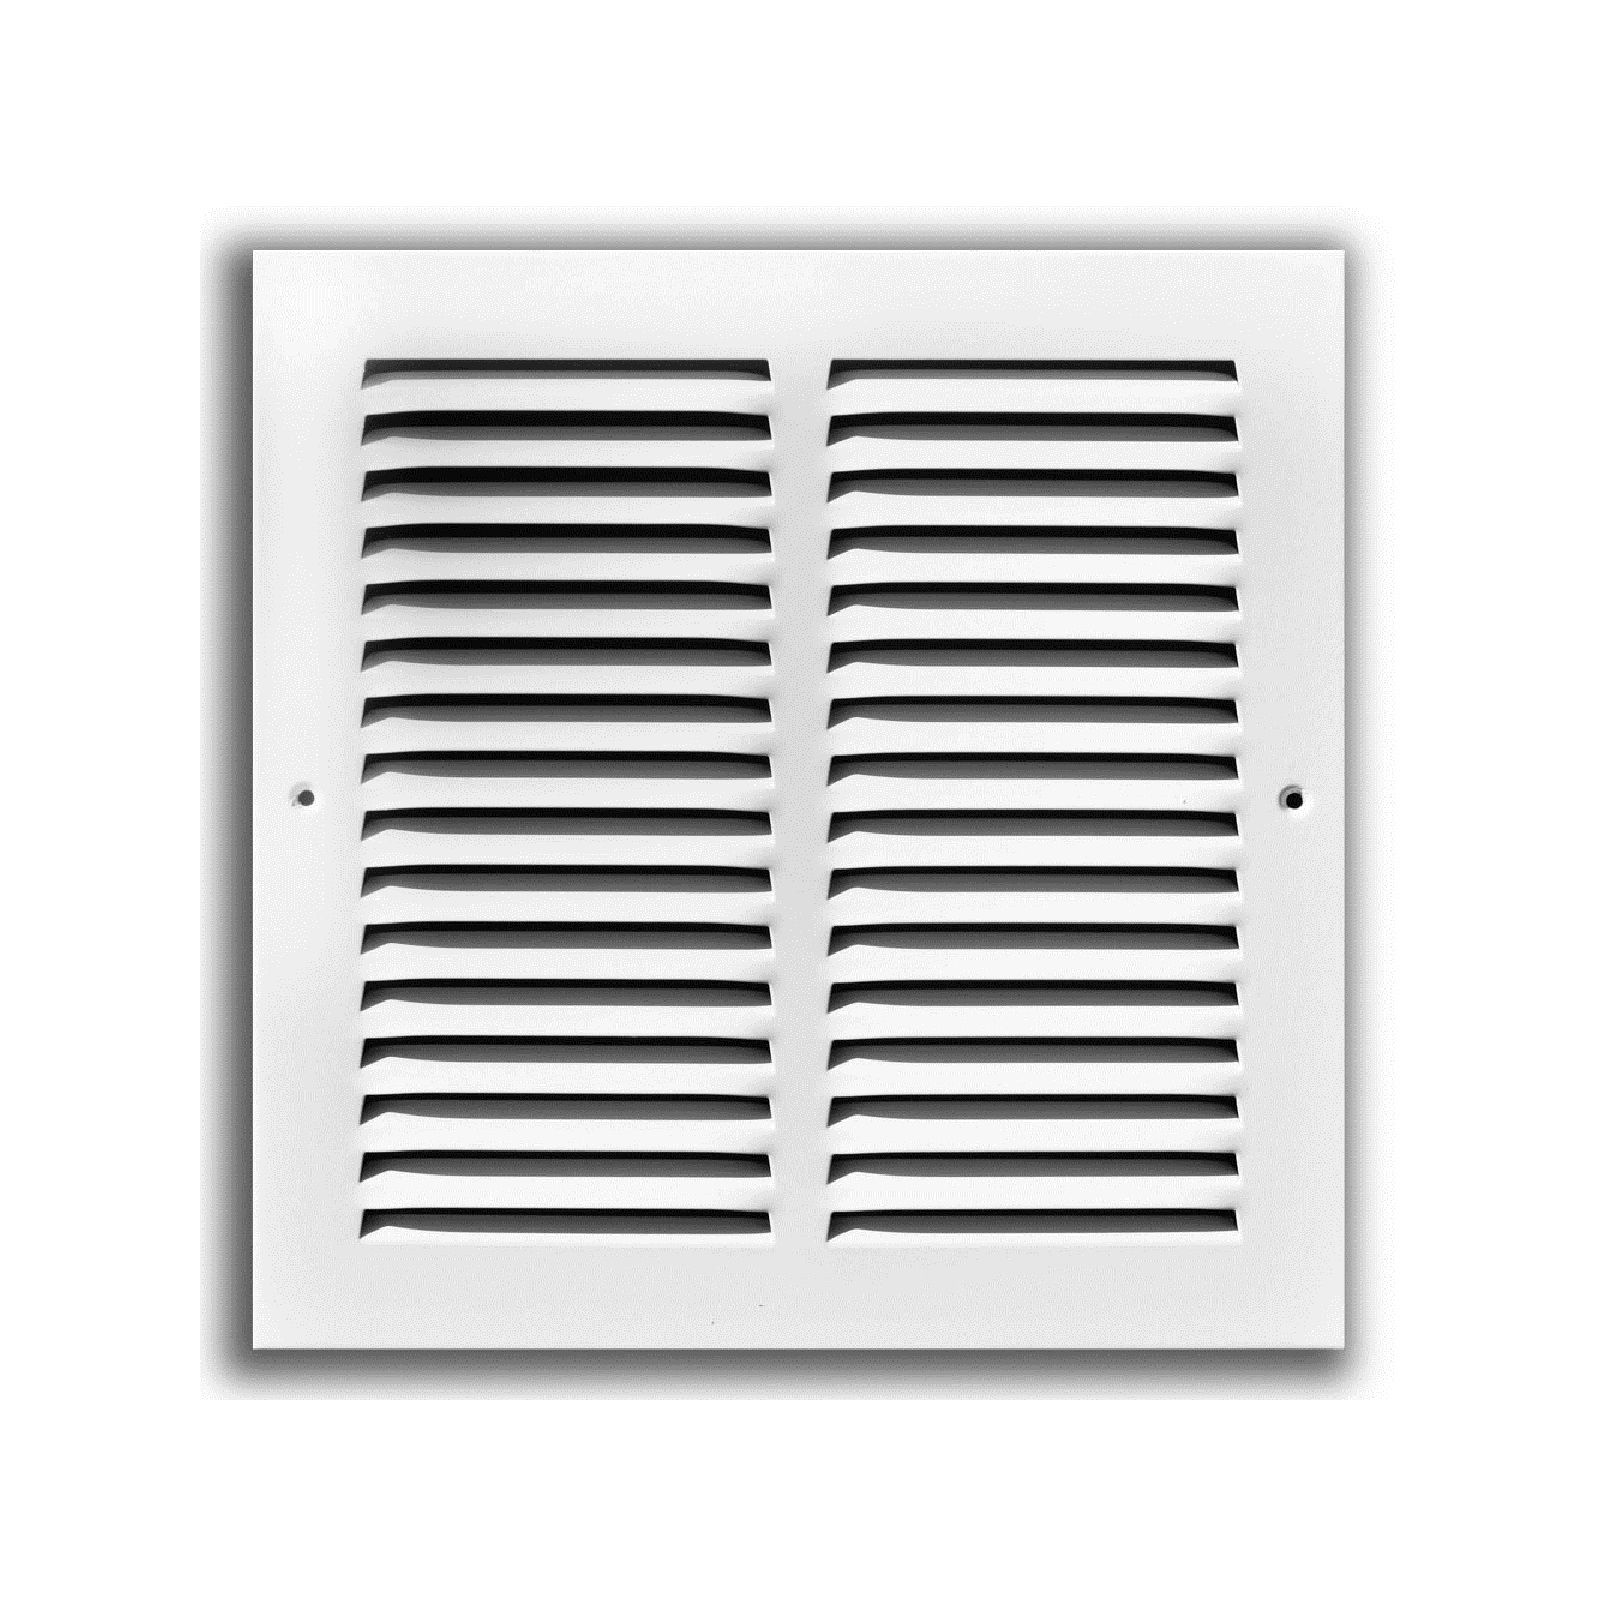 "TRUaire 170 18X04 - Steel Return Air Grille - 1/2"" Spaced Fin, White, 18"" X 04"""